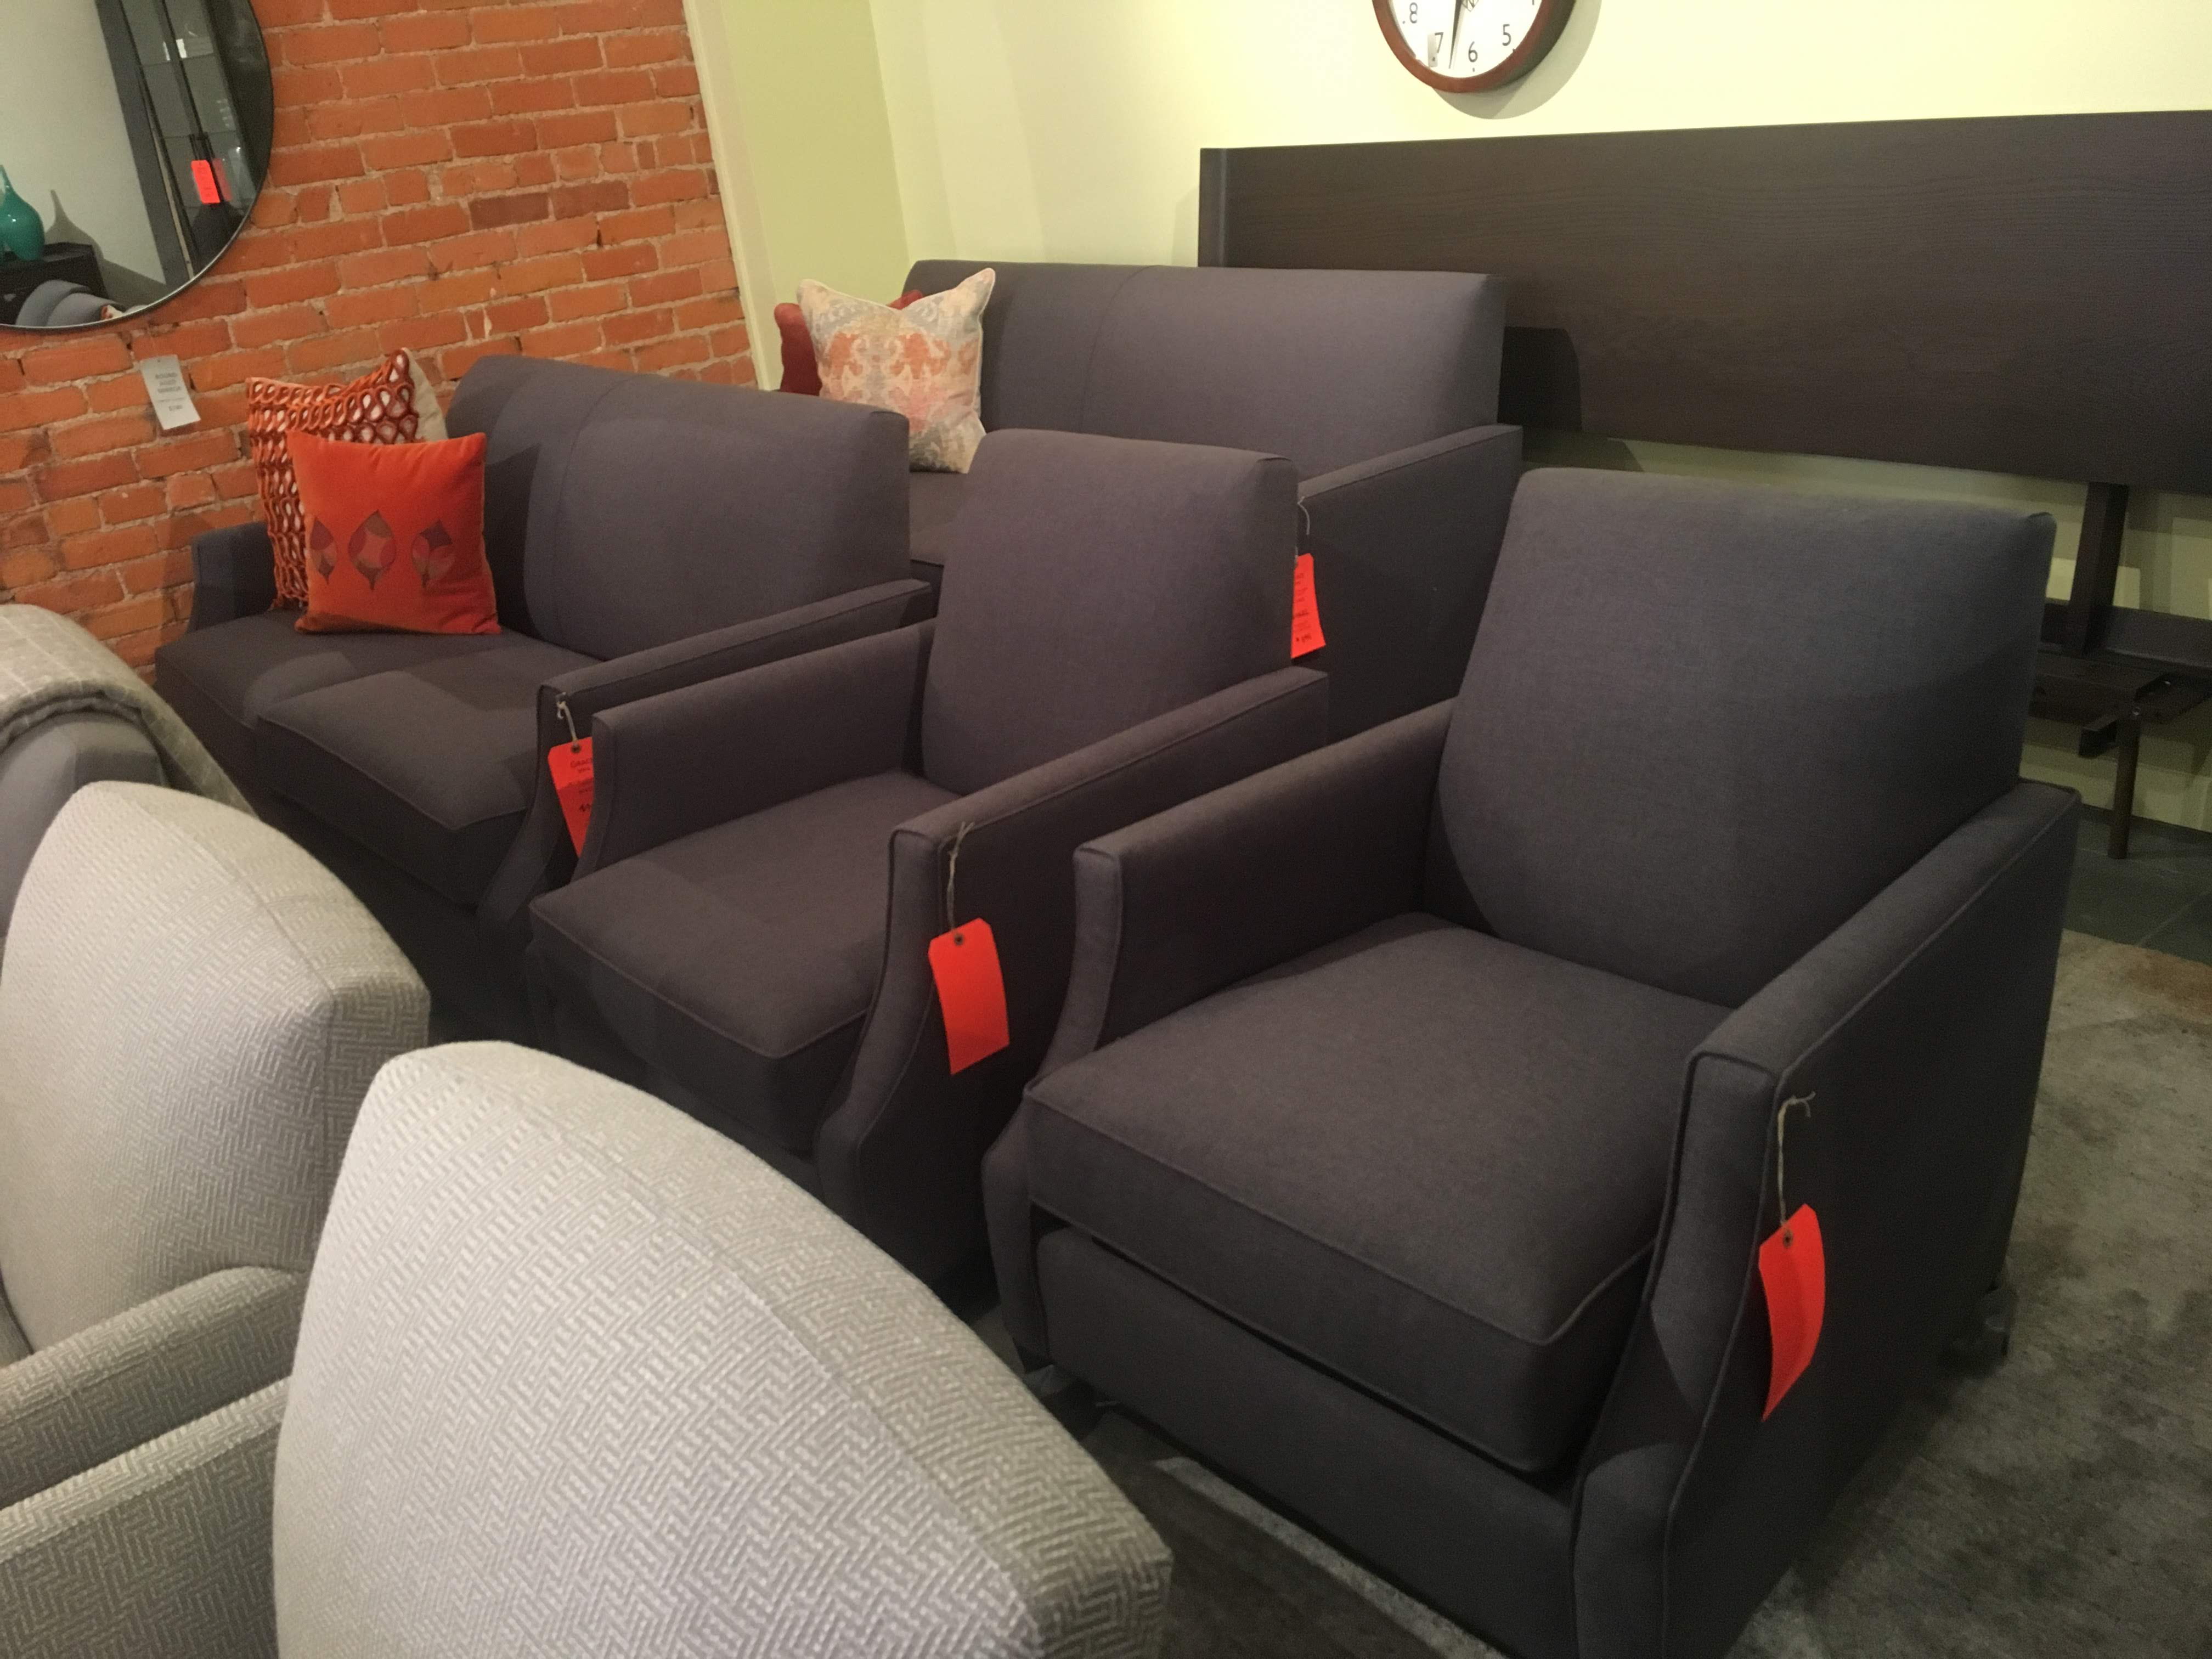 Admirable Clearance Furniture Sale Ann Arbor Three Chairs Co Chairs Home Interior And Landscaping Ologienasavecom